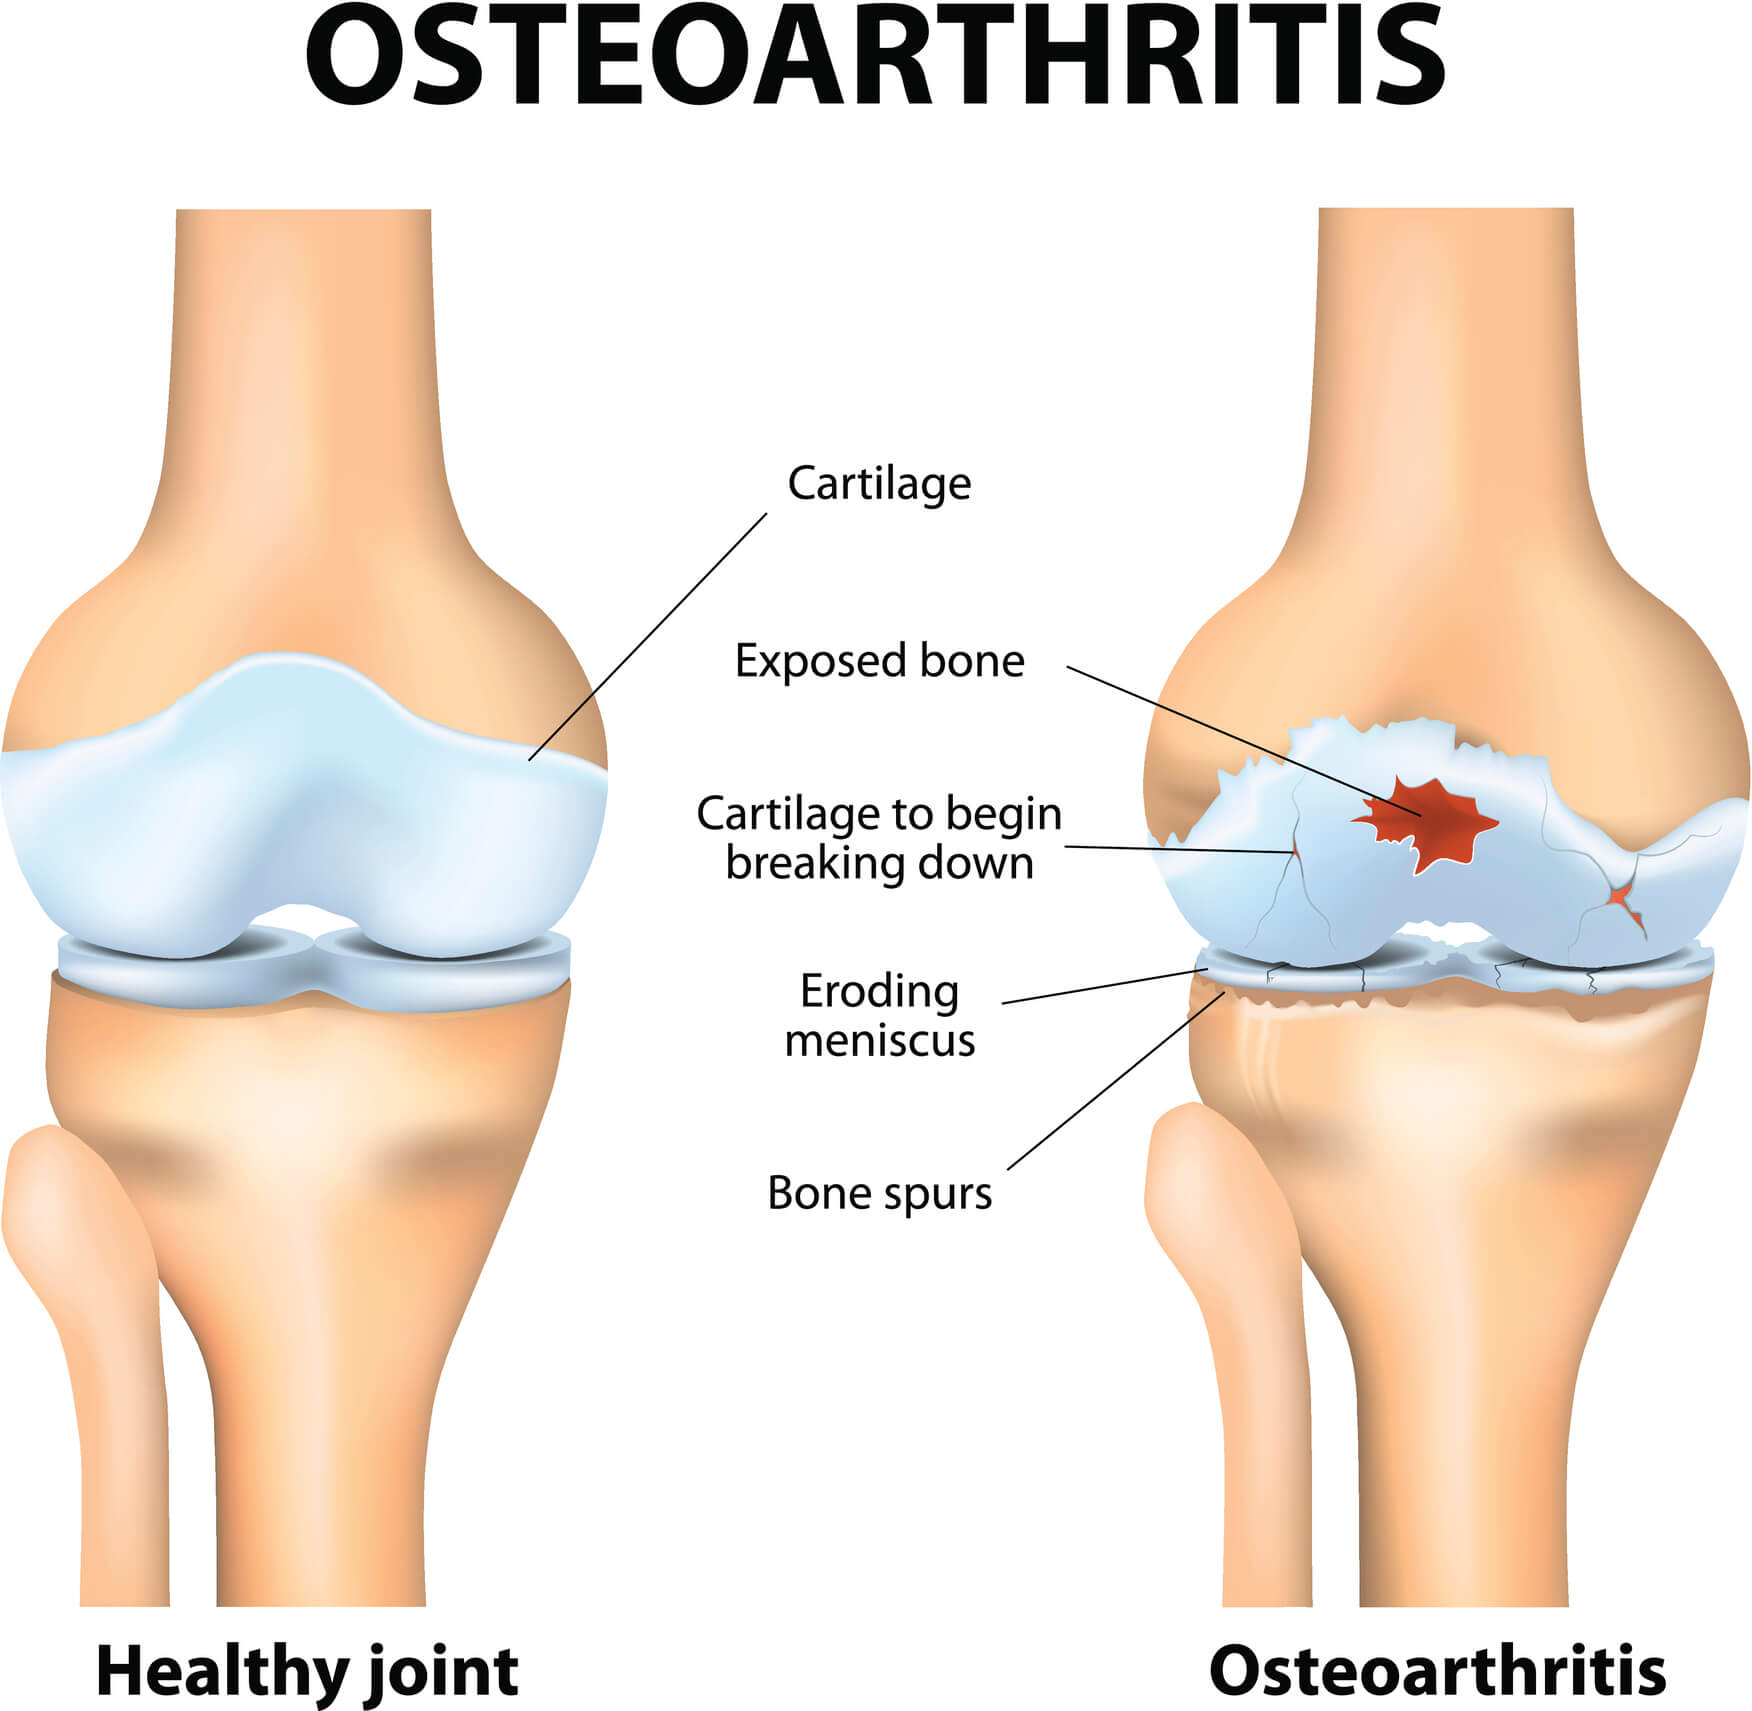 Medical Image of a healthy knee and one affected by knee osteoarthritis